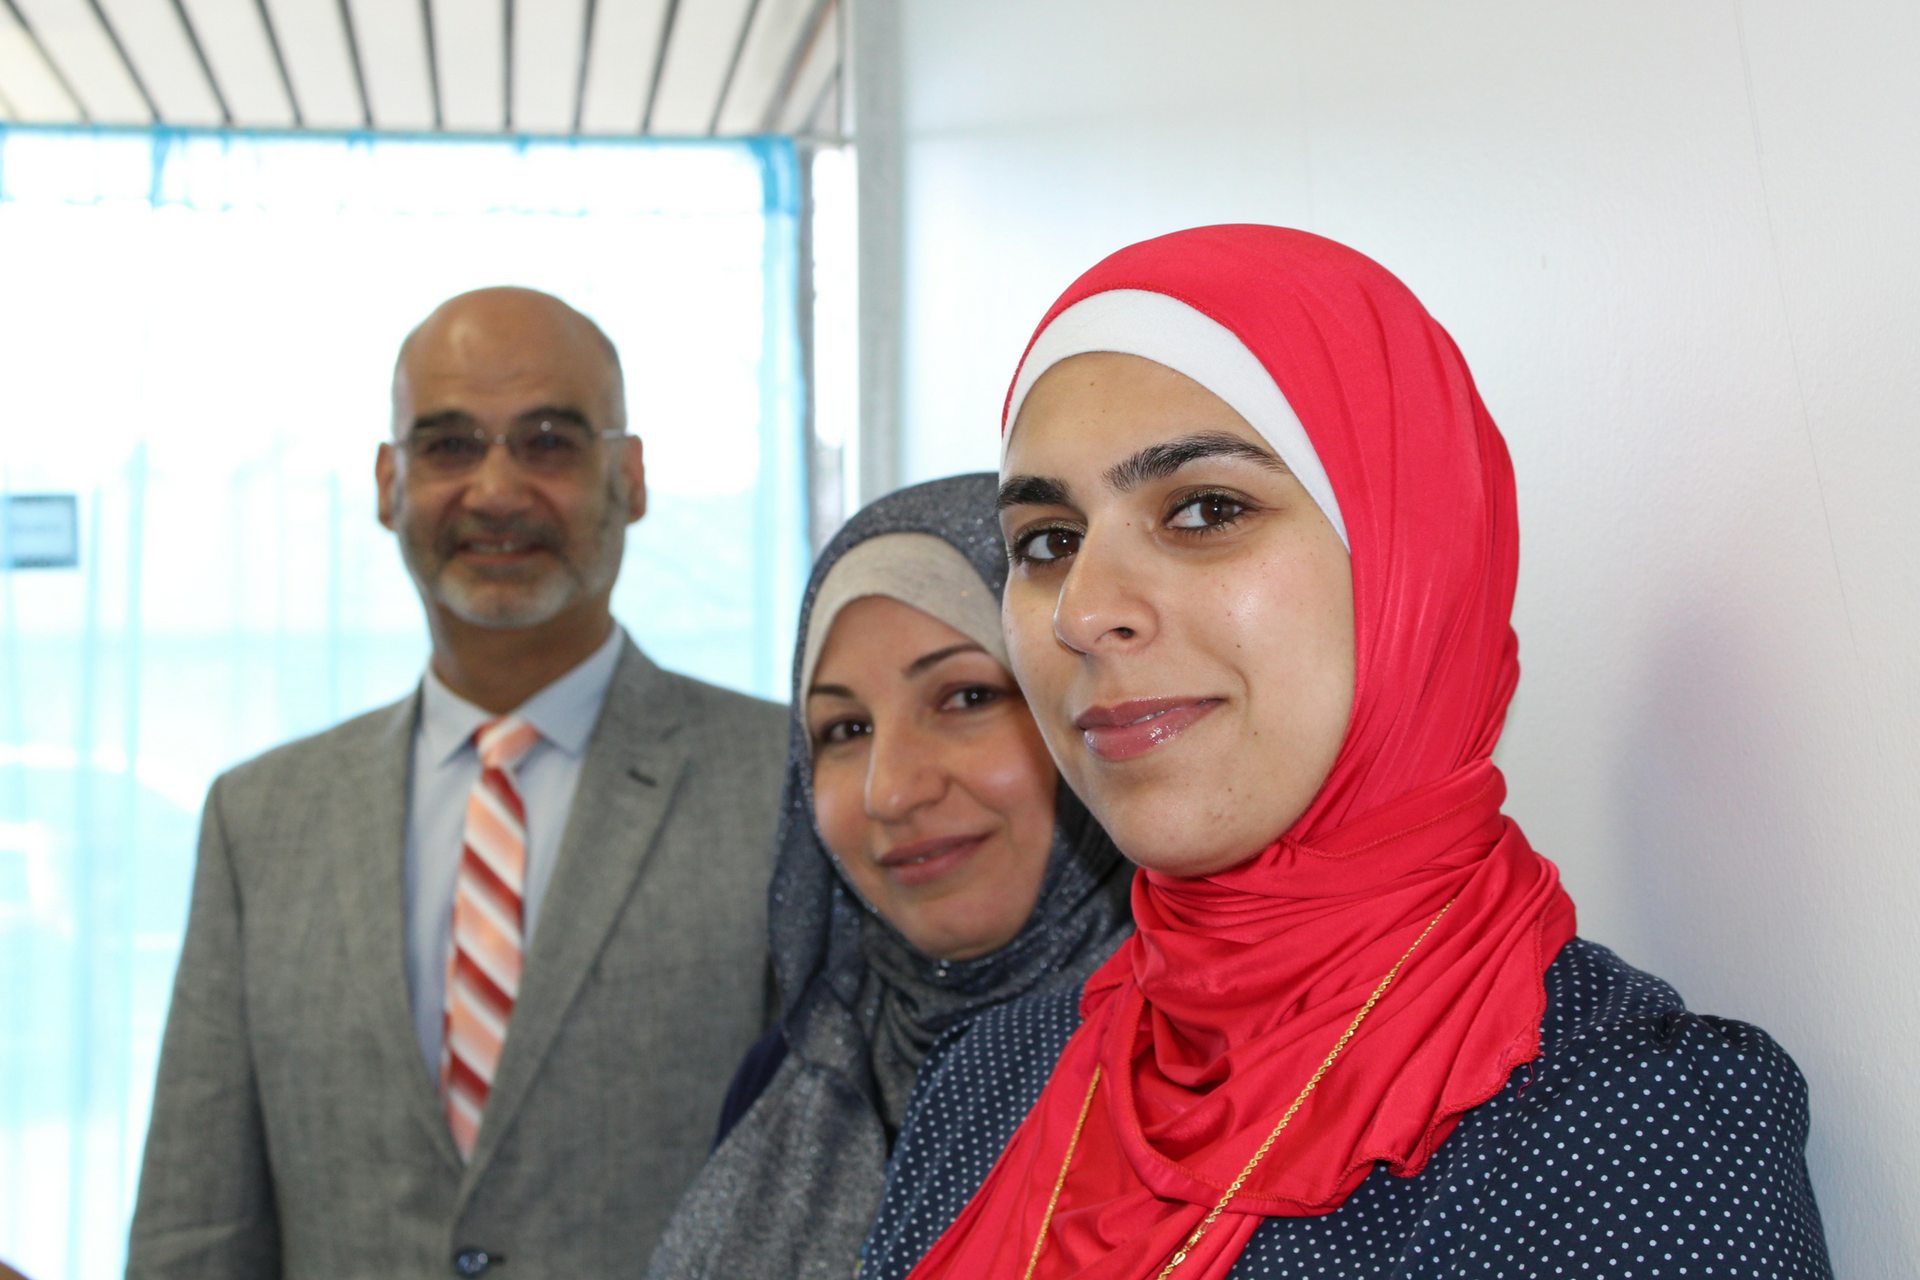 A photo of  (left to right) Central Academy of Ann Arbor principal Luay Shalabi, support staff Nahla Attar, and Parent Coordinator Nadia Hasan.